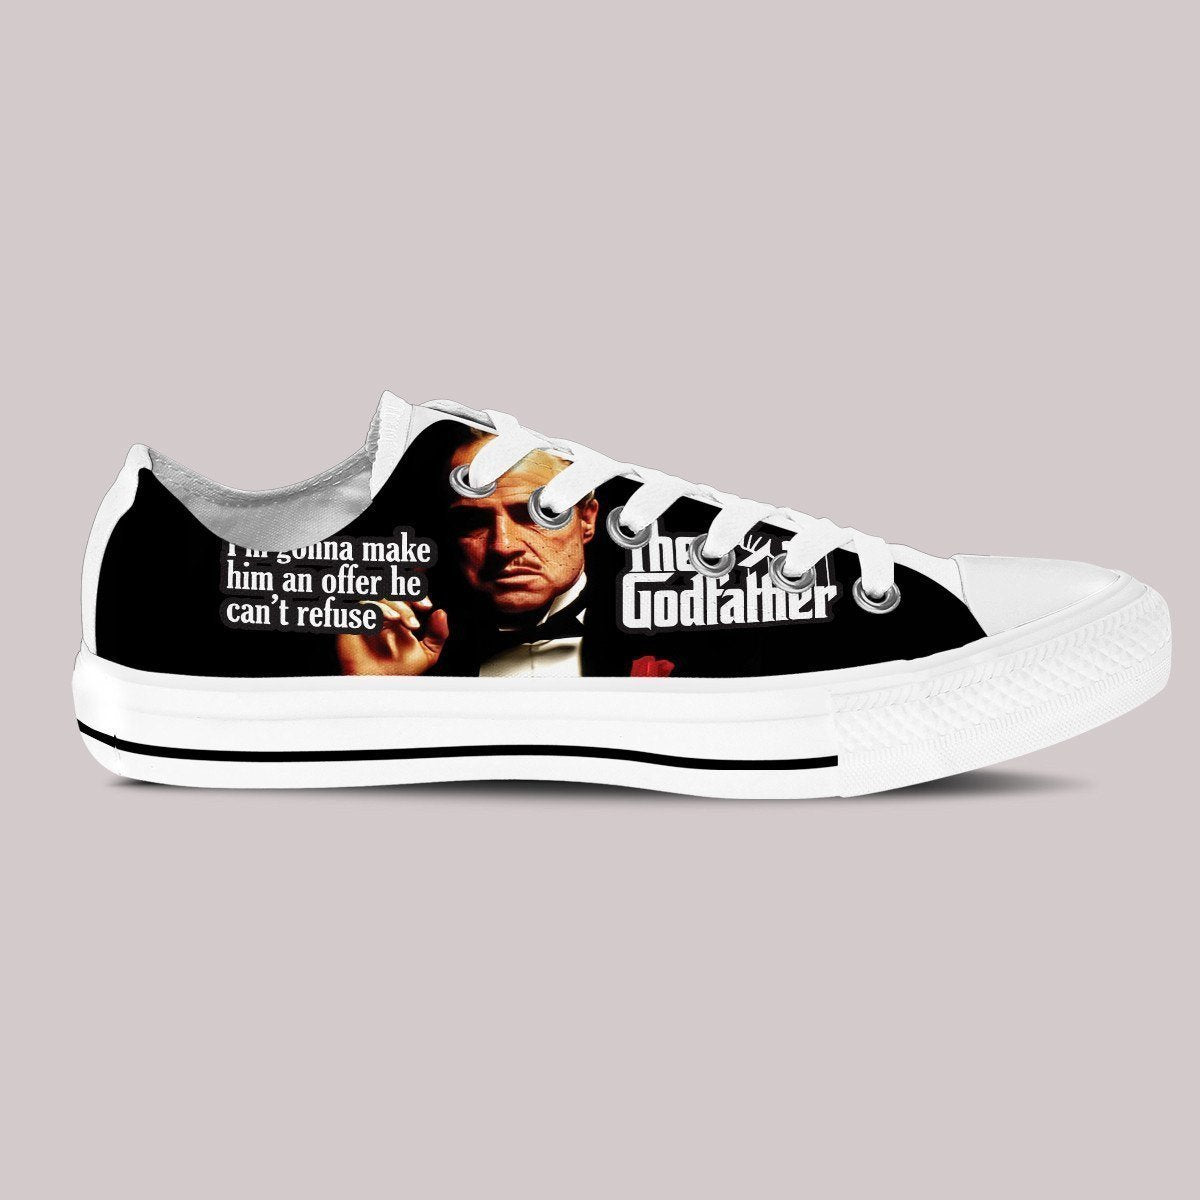 the godfather ladies low cut sneakers